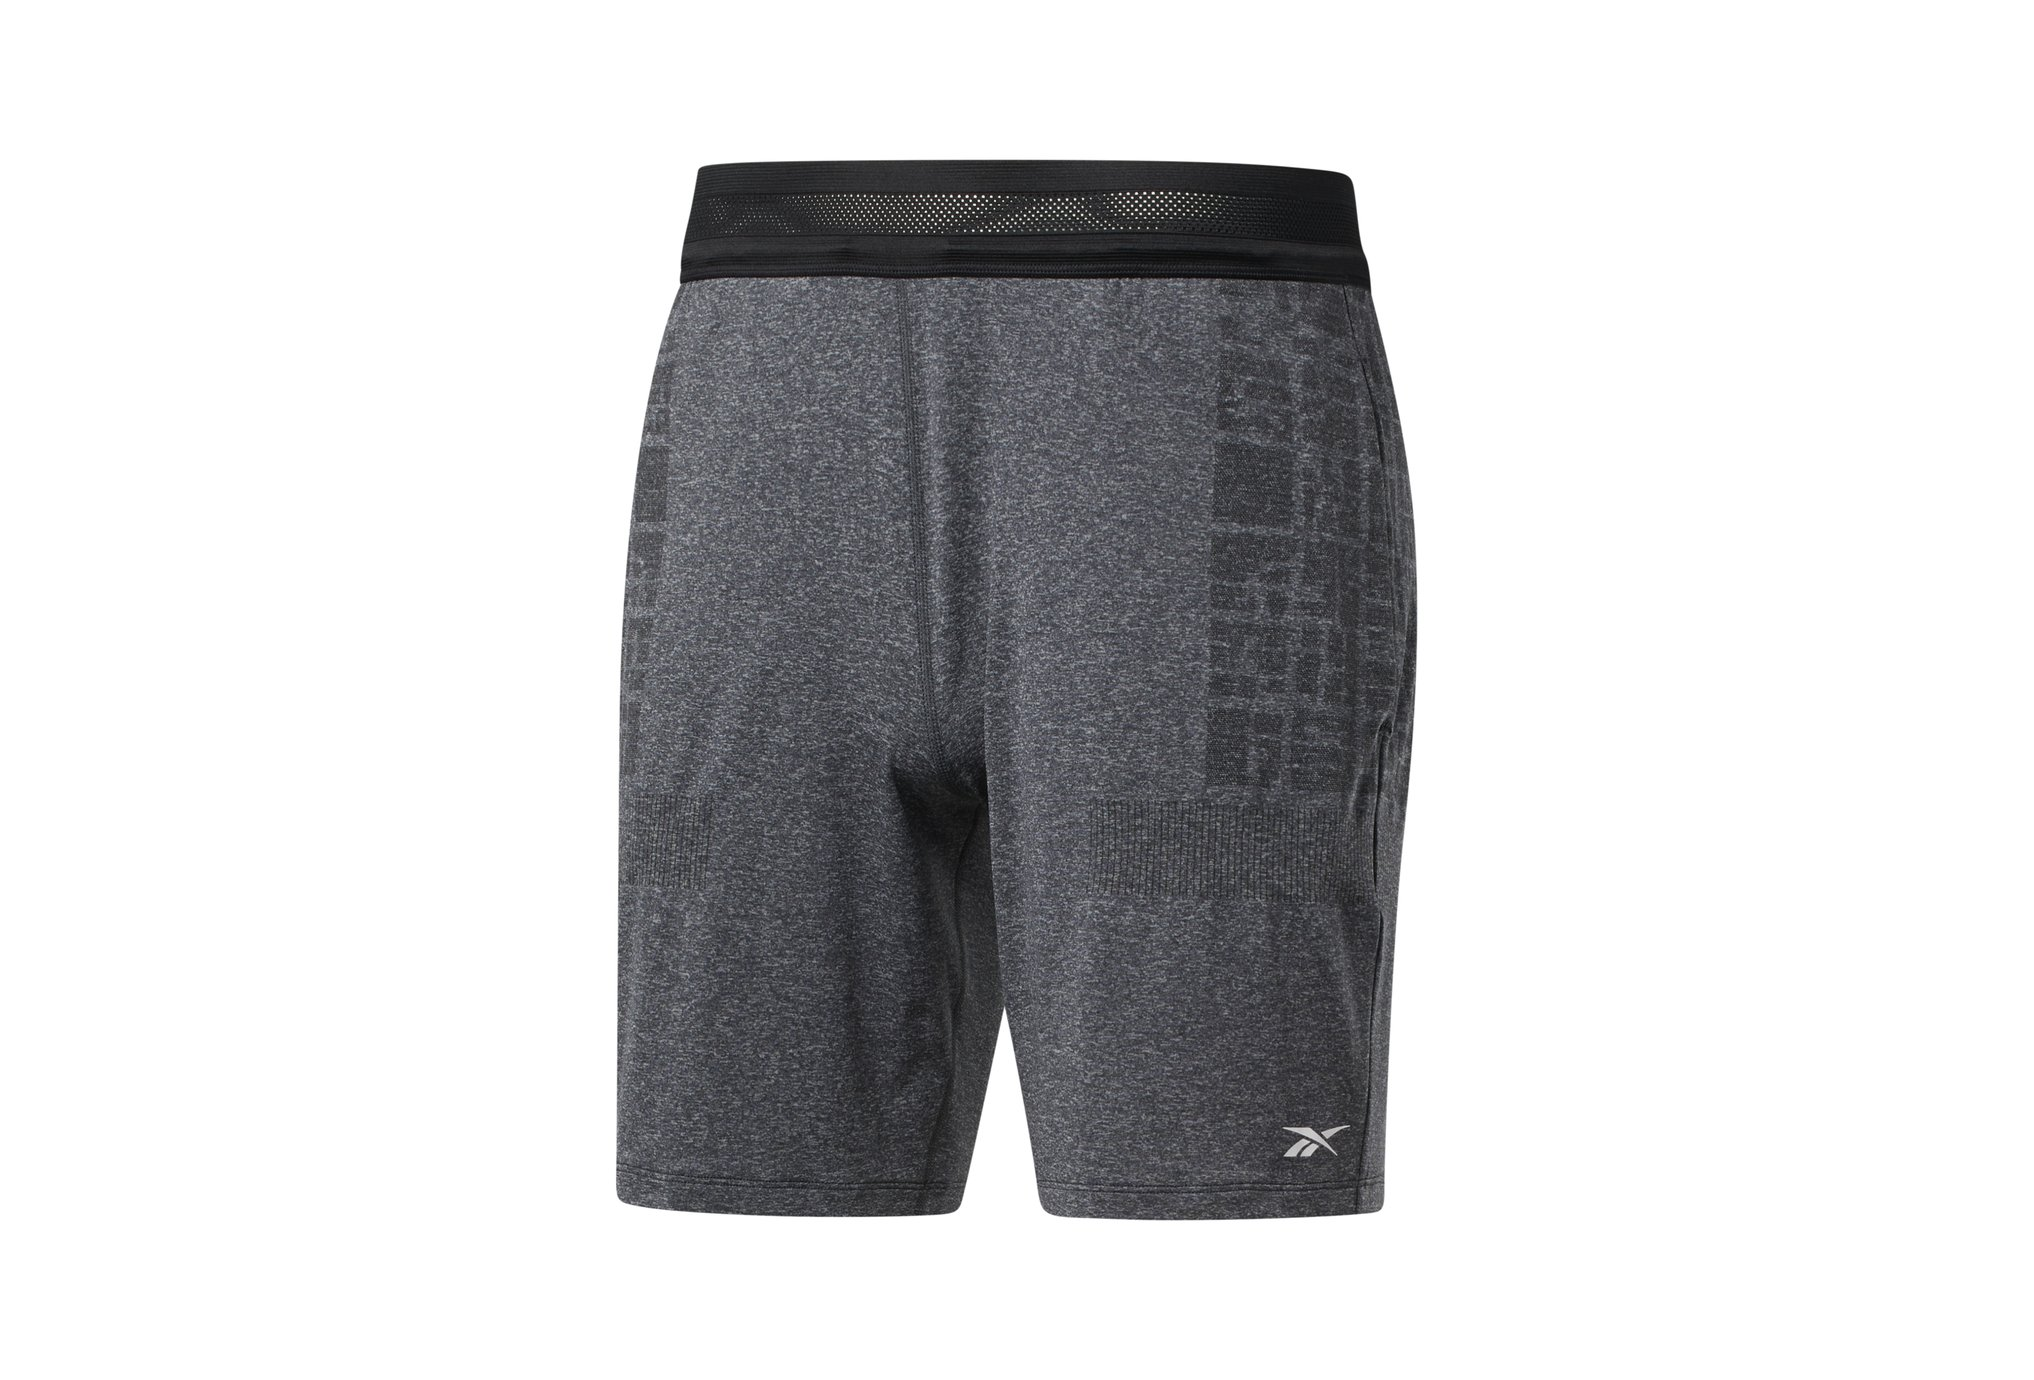 Reebok MyoKnit United By Fitness M vêtement running homme